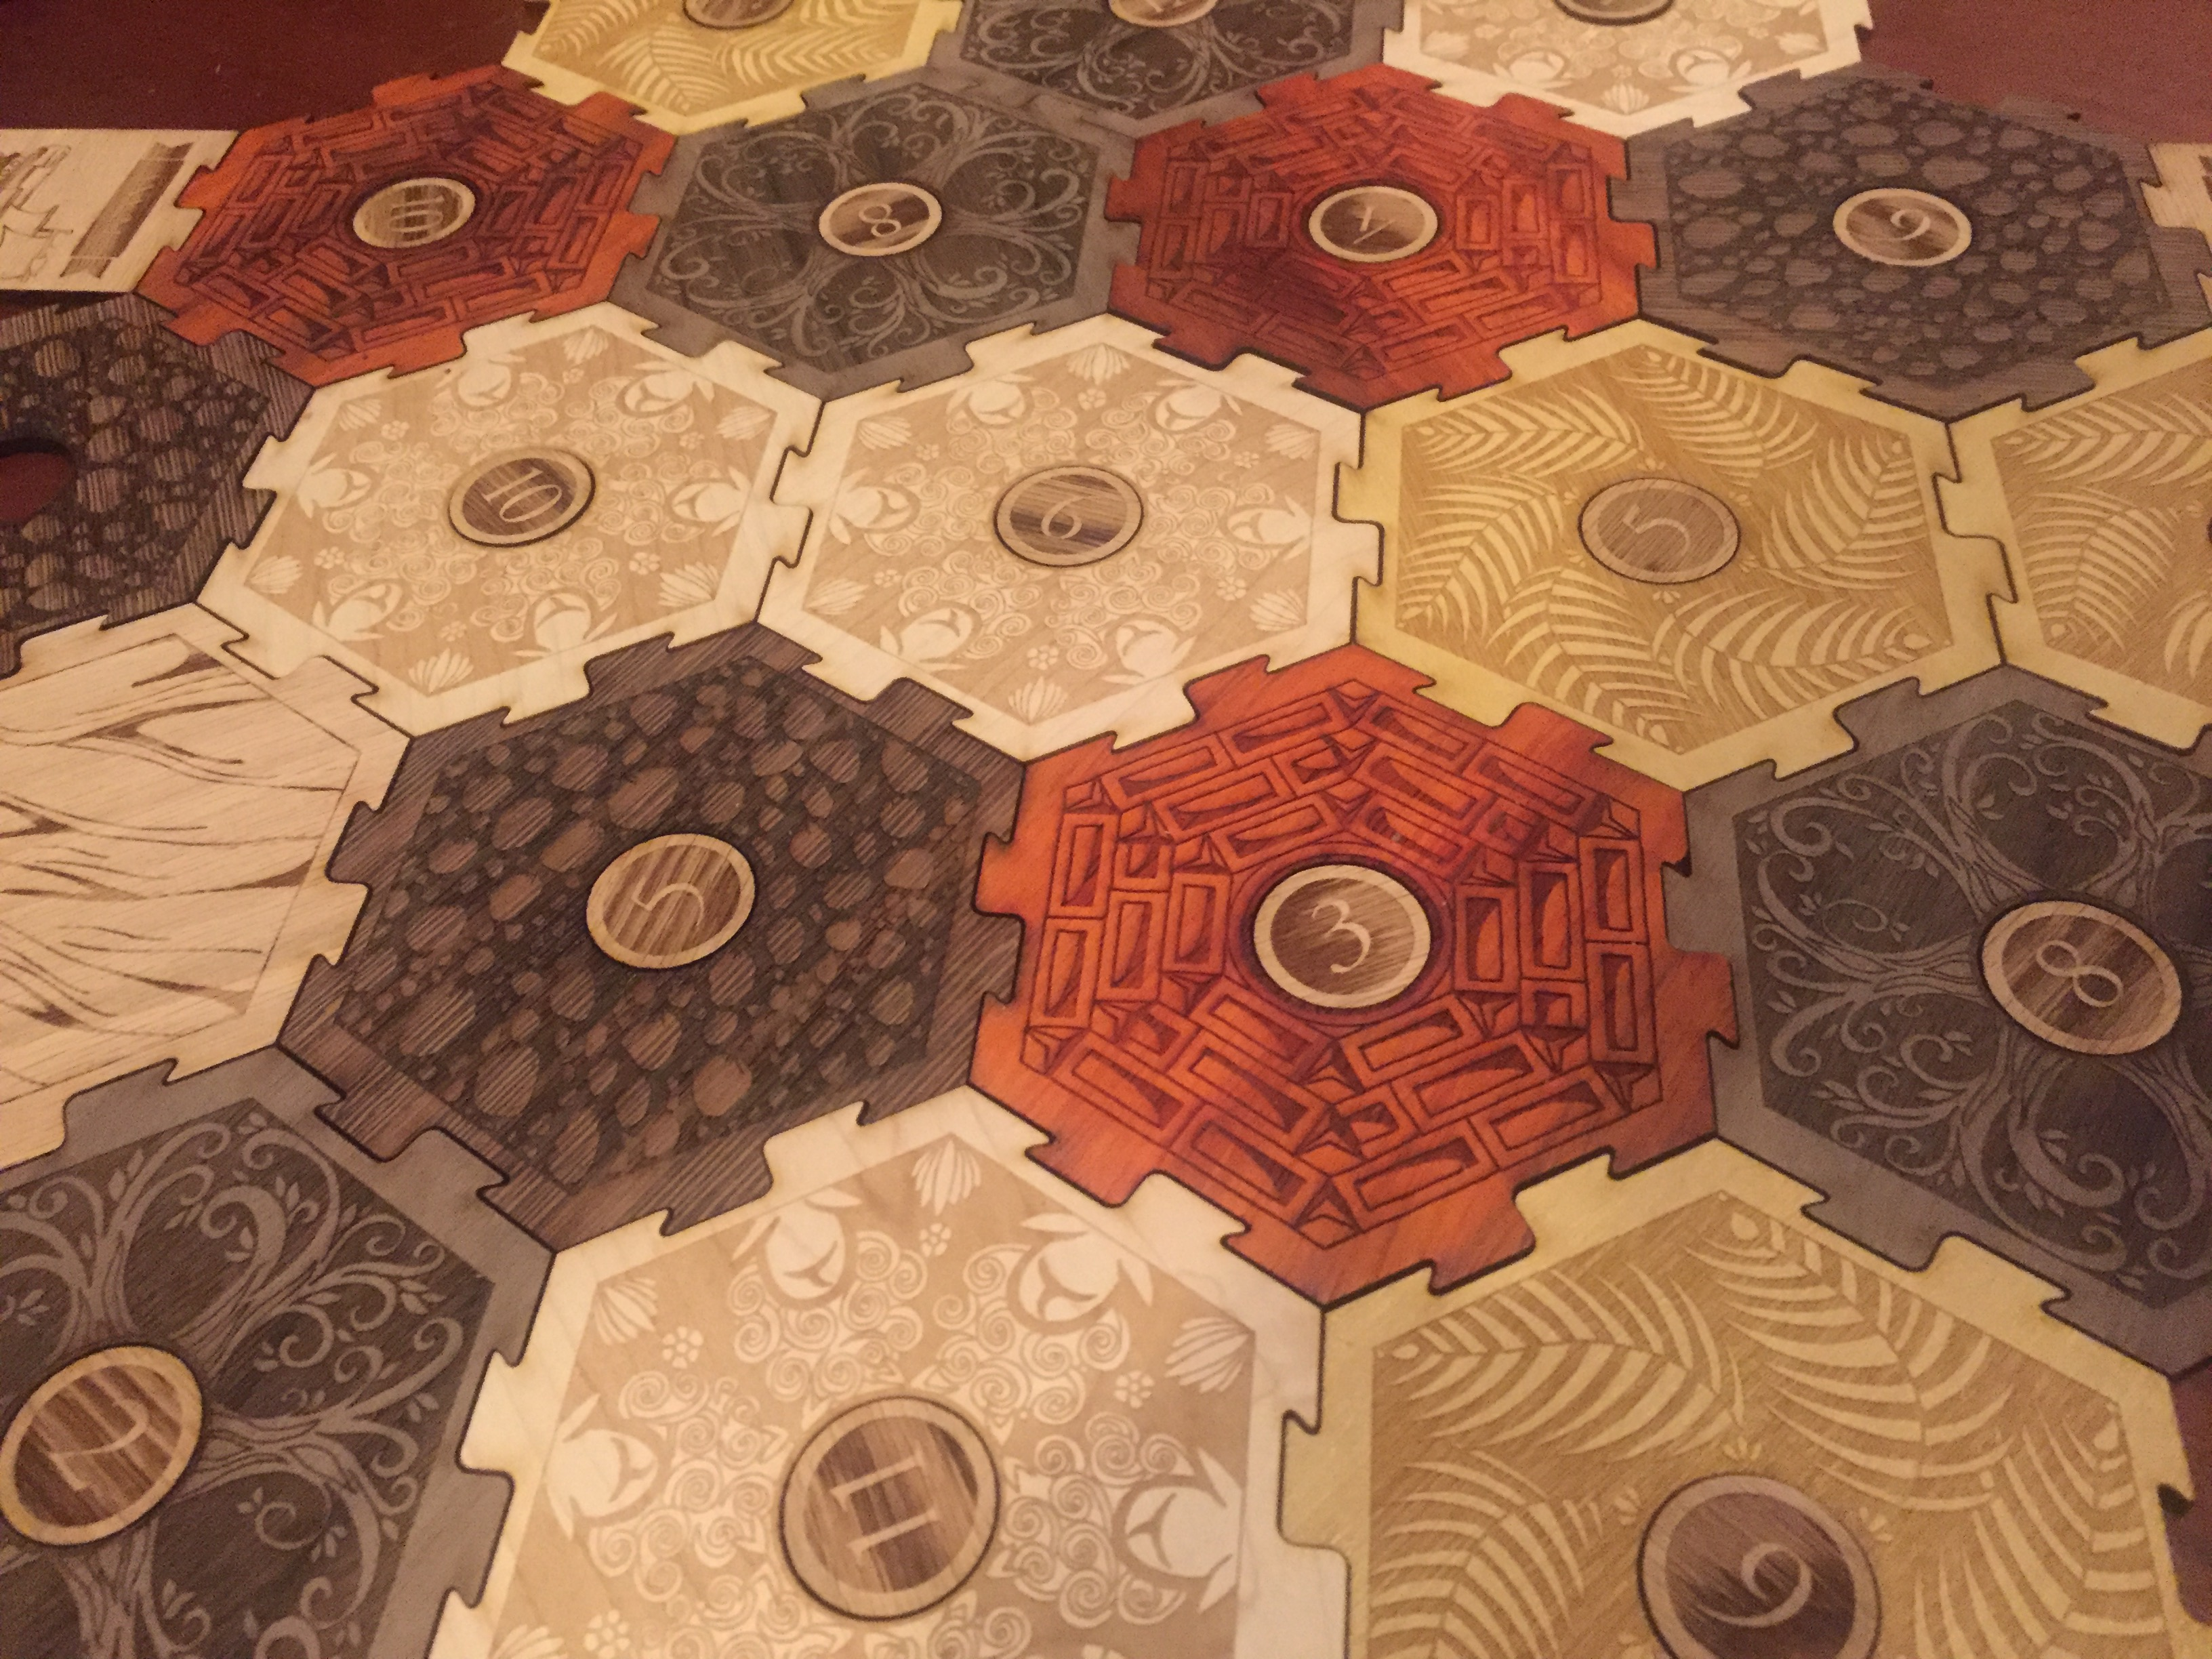 Wooden Settlers of Catan Board made with Laser Cutter